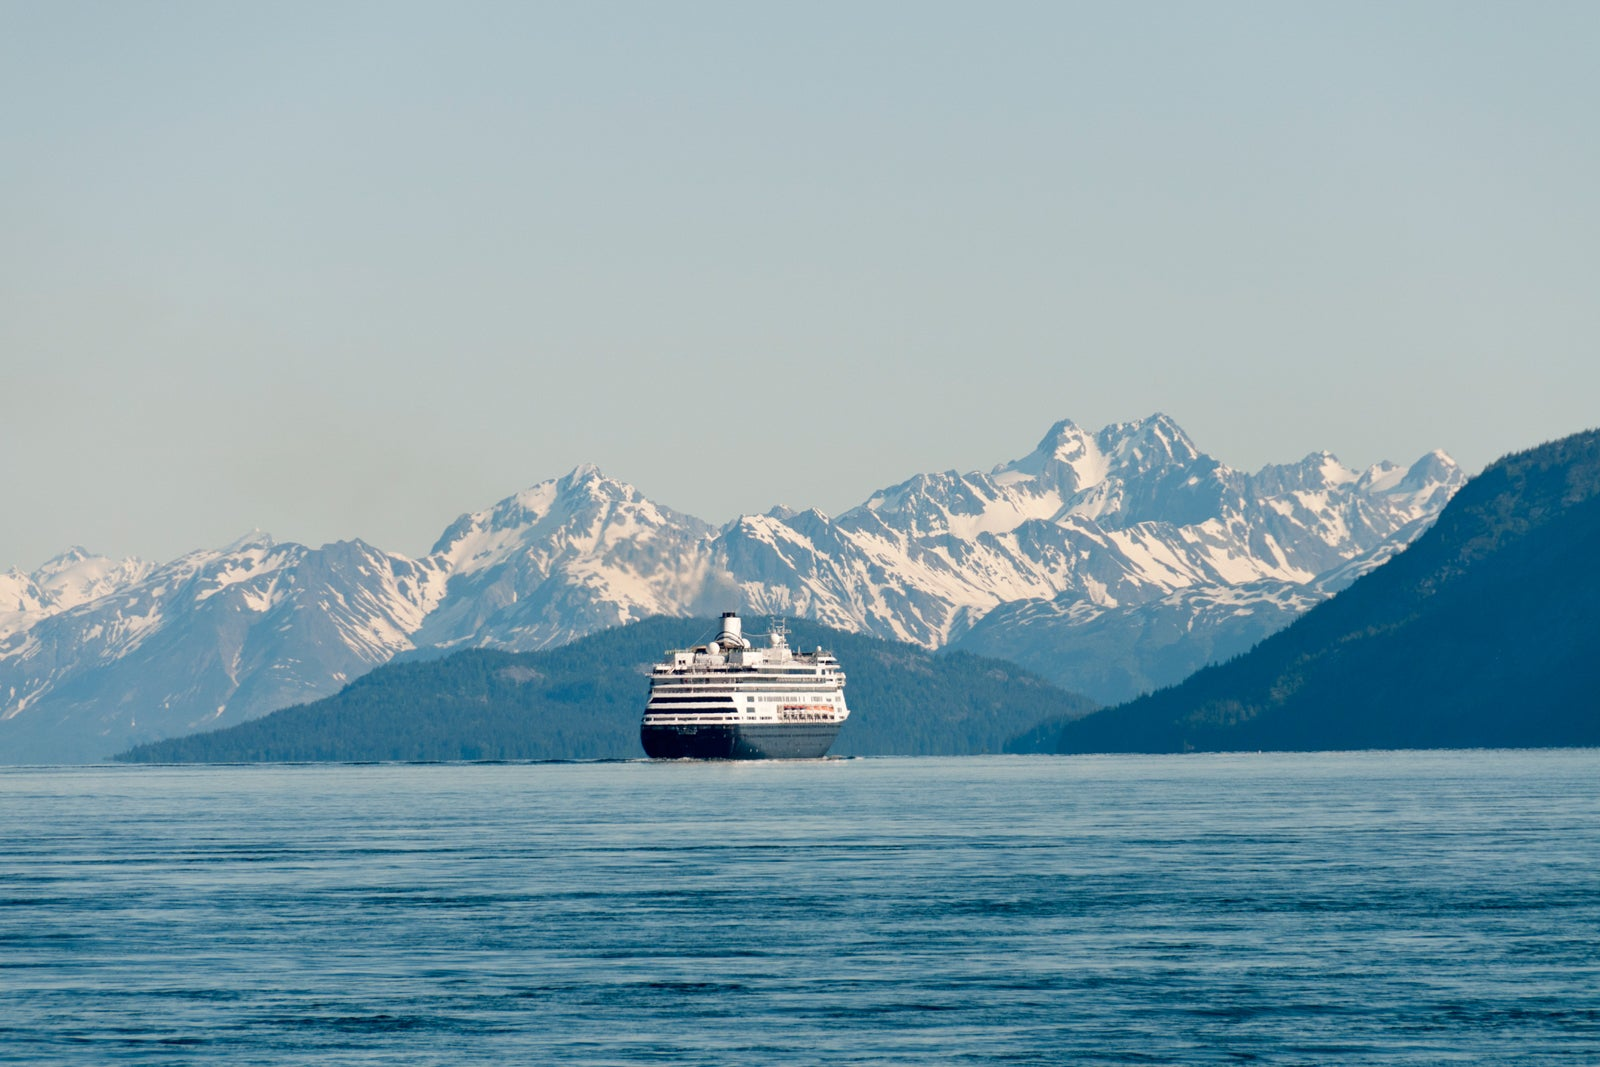 Cruise ships could permanently skip Canada on Alaska voyages under new bill - The Points Guy